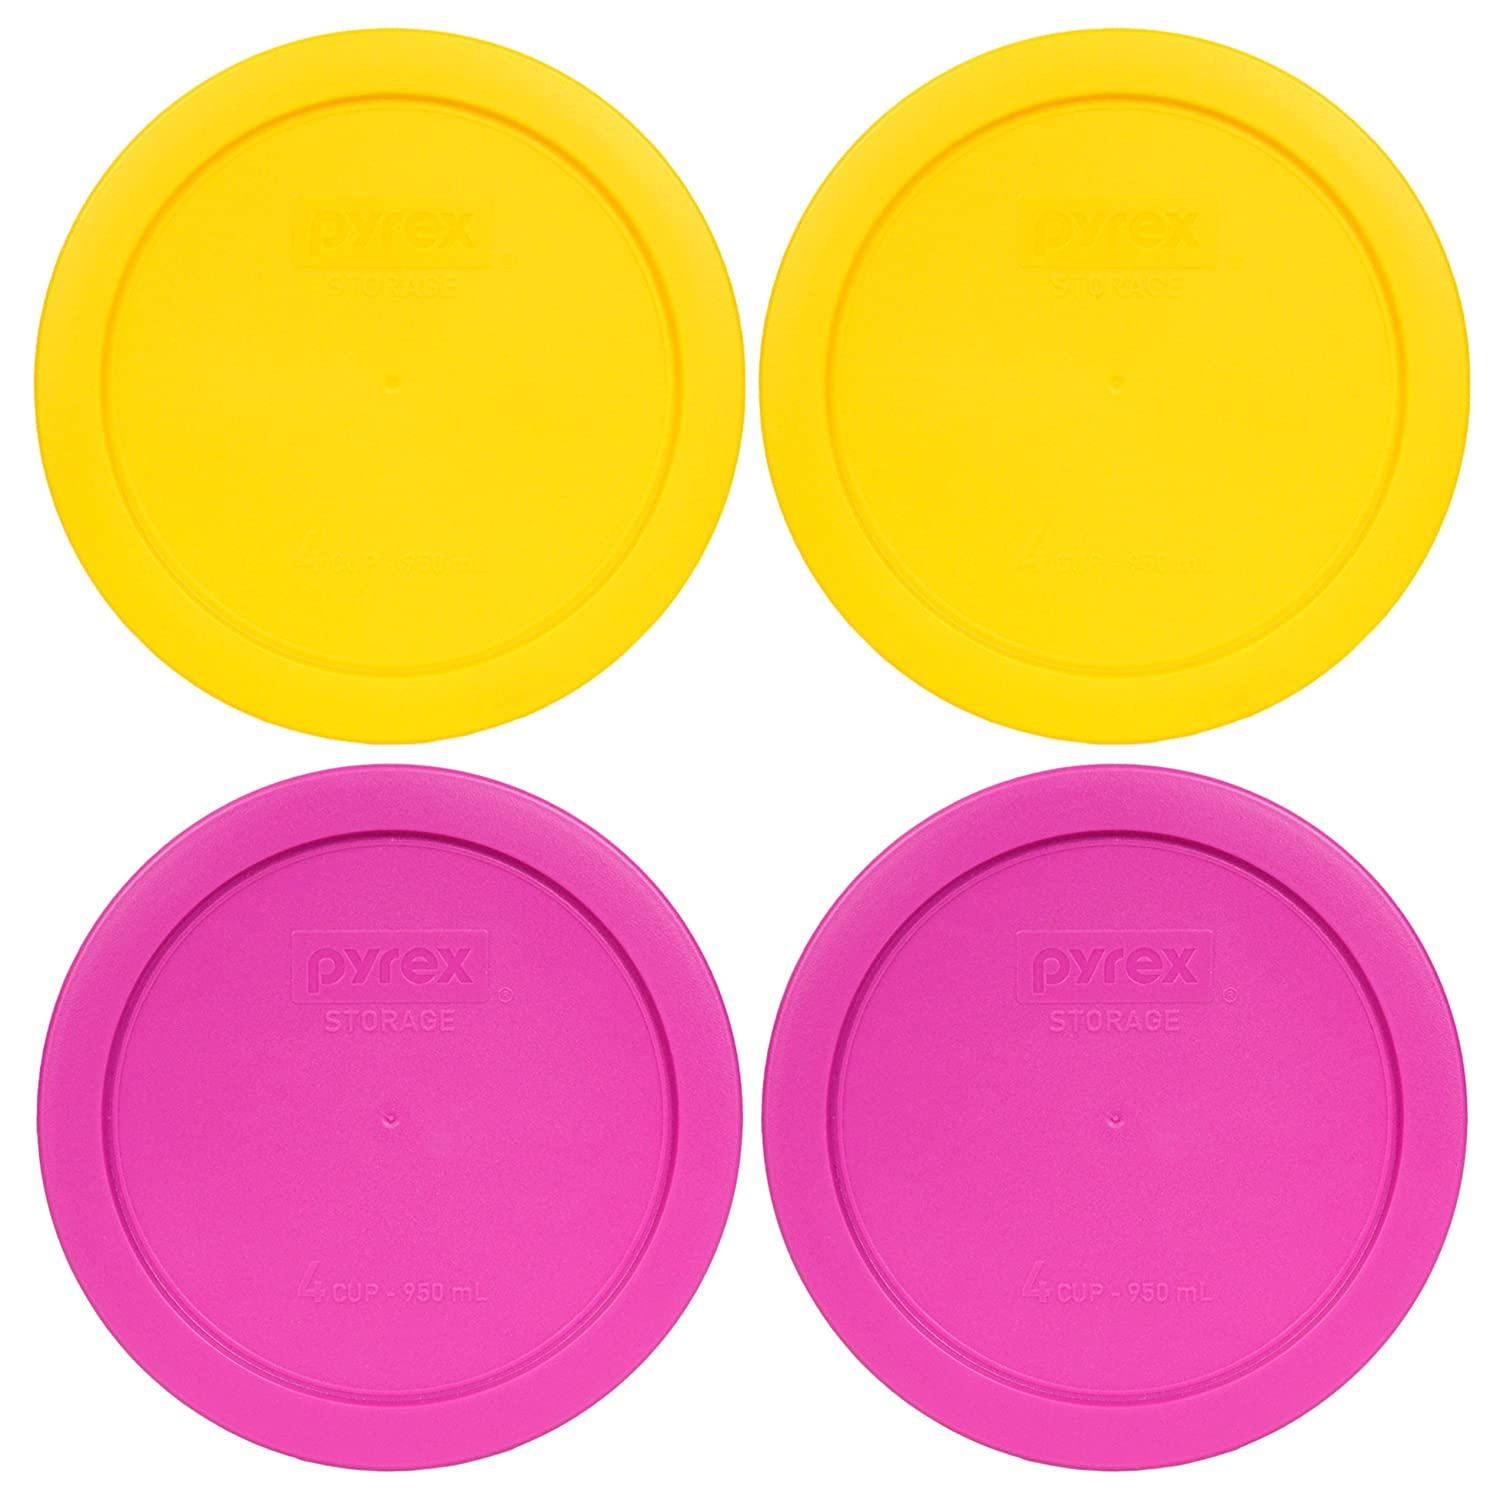 Pyrex 7201-PC 4 Cup (2) Meyer Yellow (2) Pink Round Plastic Lids - 4 Pack